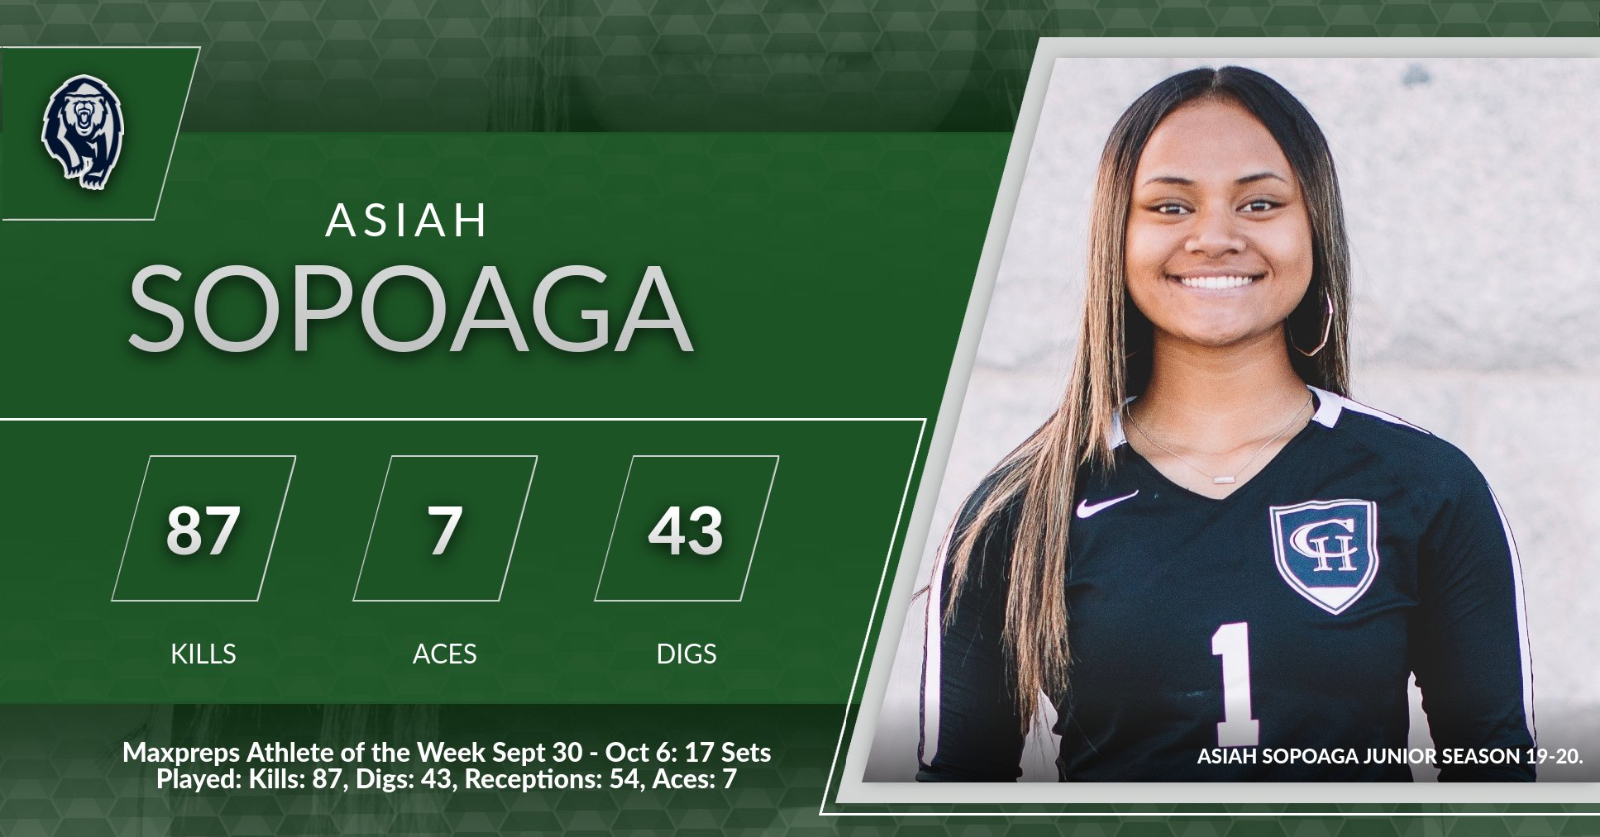 Maxpreps Player of the Week!